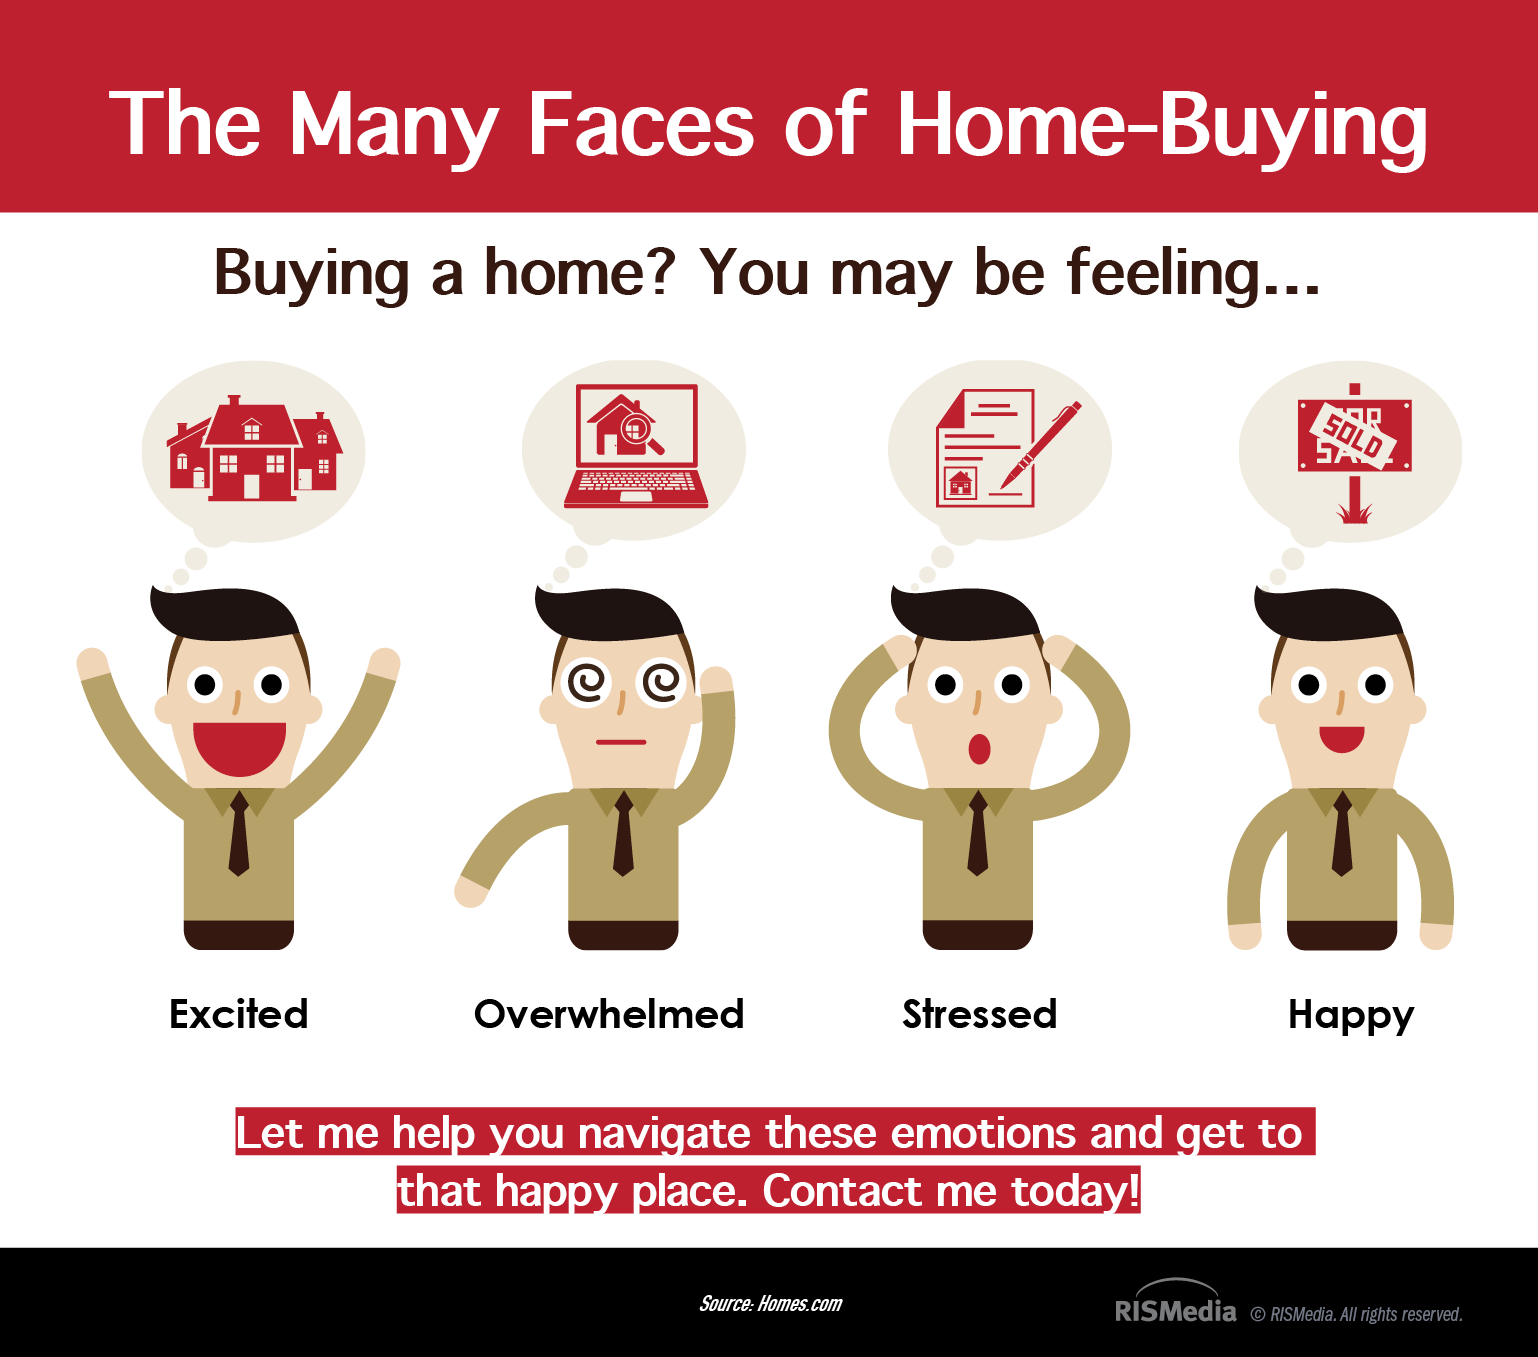 The Many Faces of Home-Buying